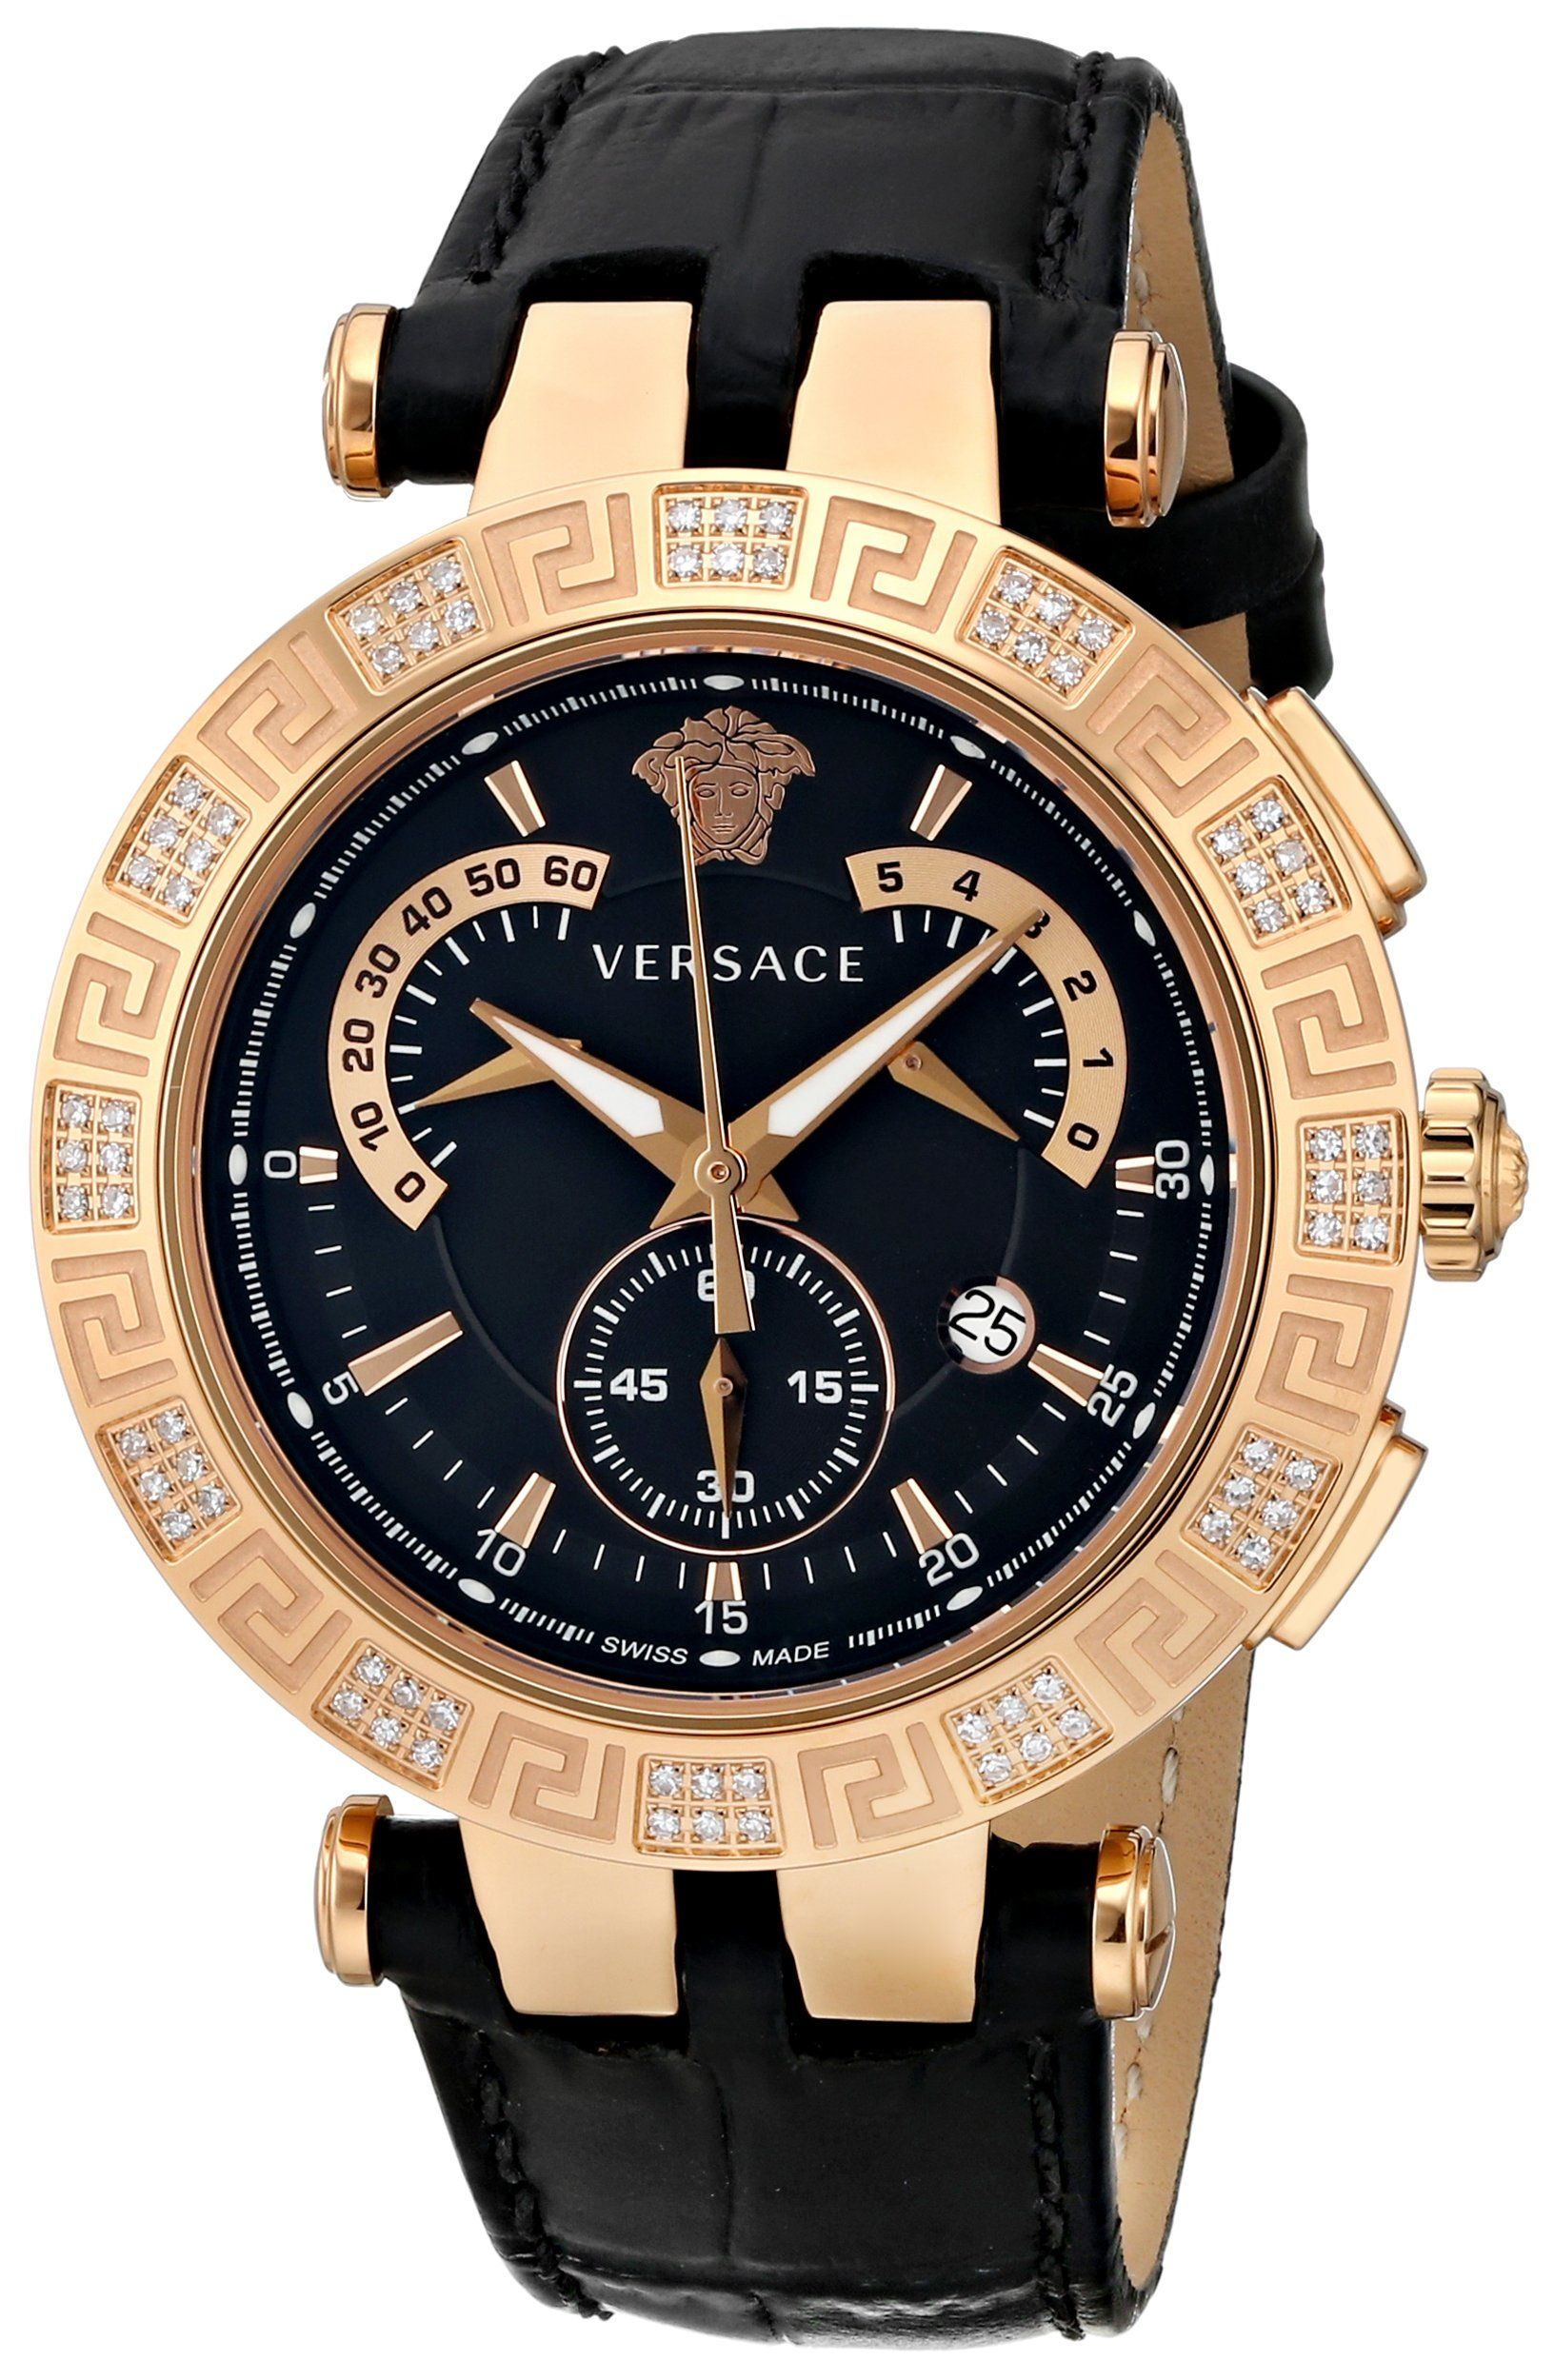 8aceb5652b5 Versace Men s 23C82D008 S009 V-RACE CHRONO Analog Display Swiss Quartz  Black Watch